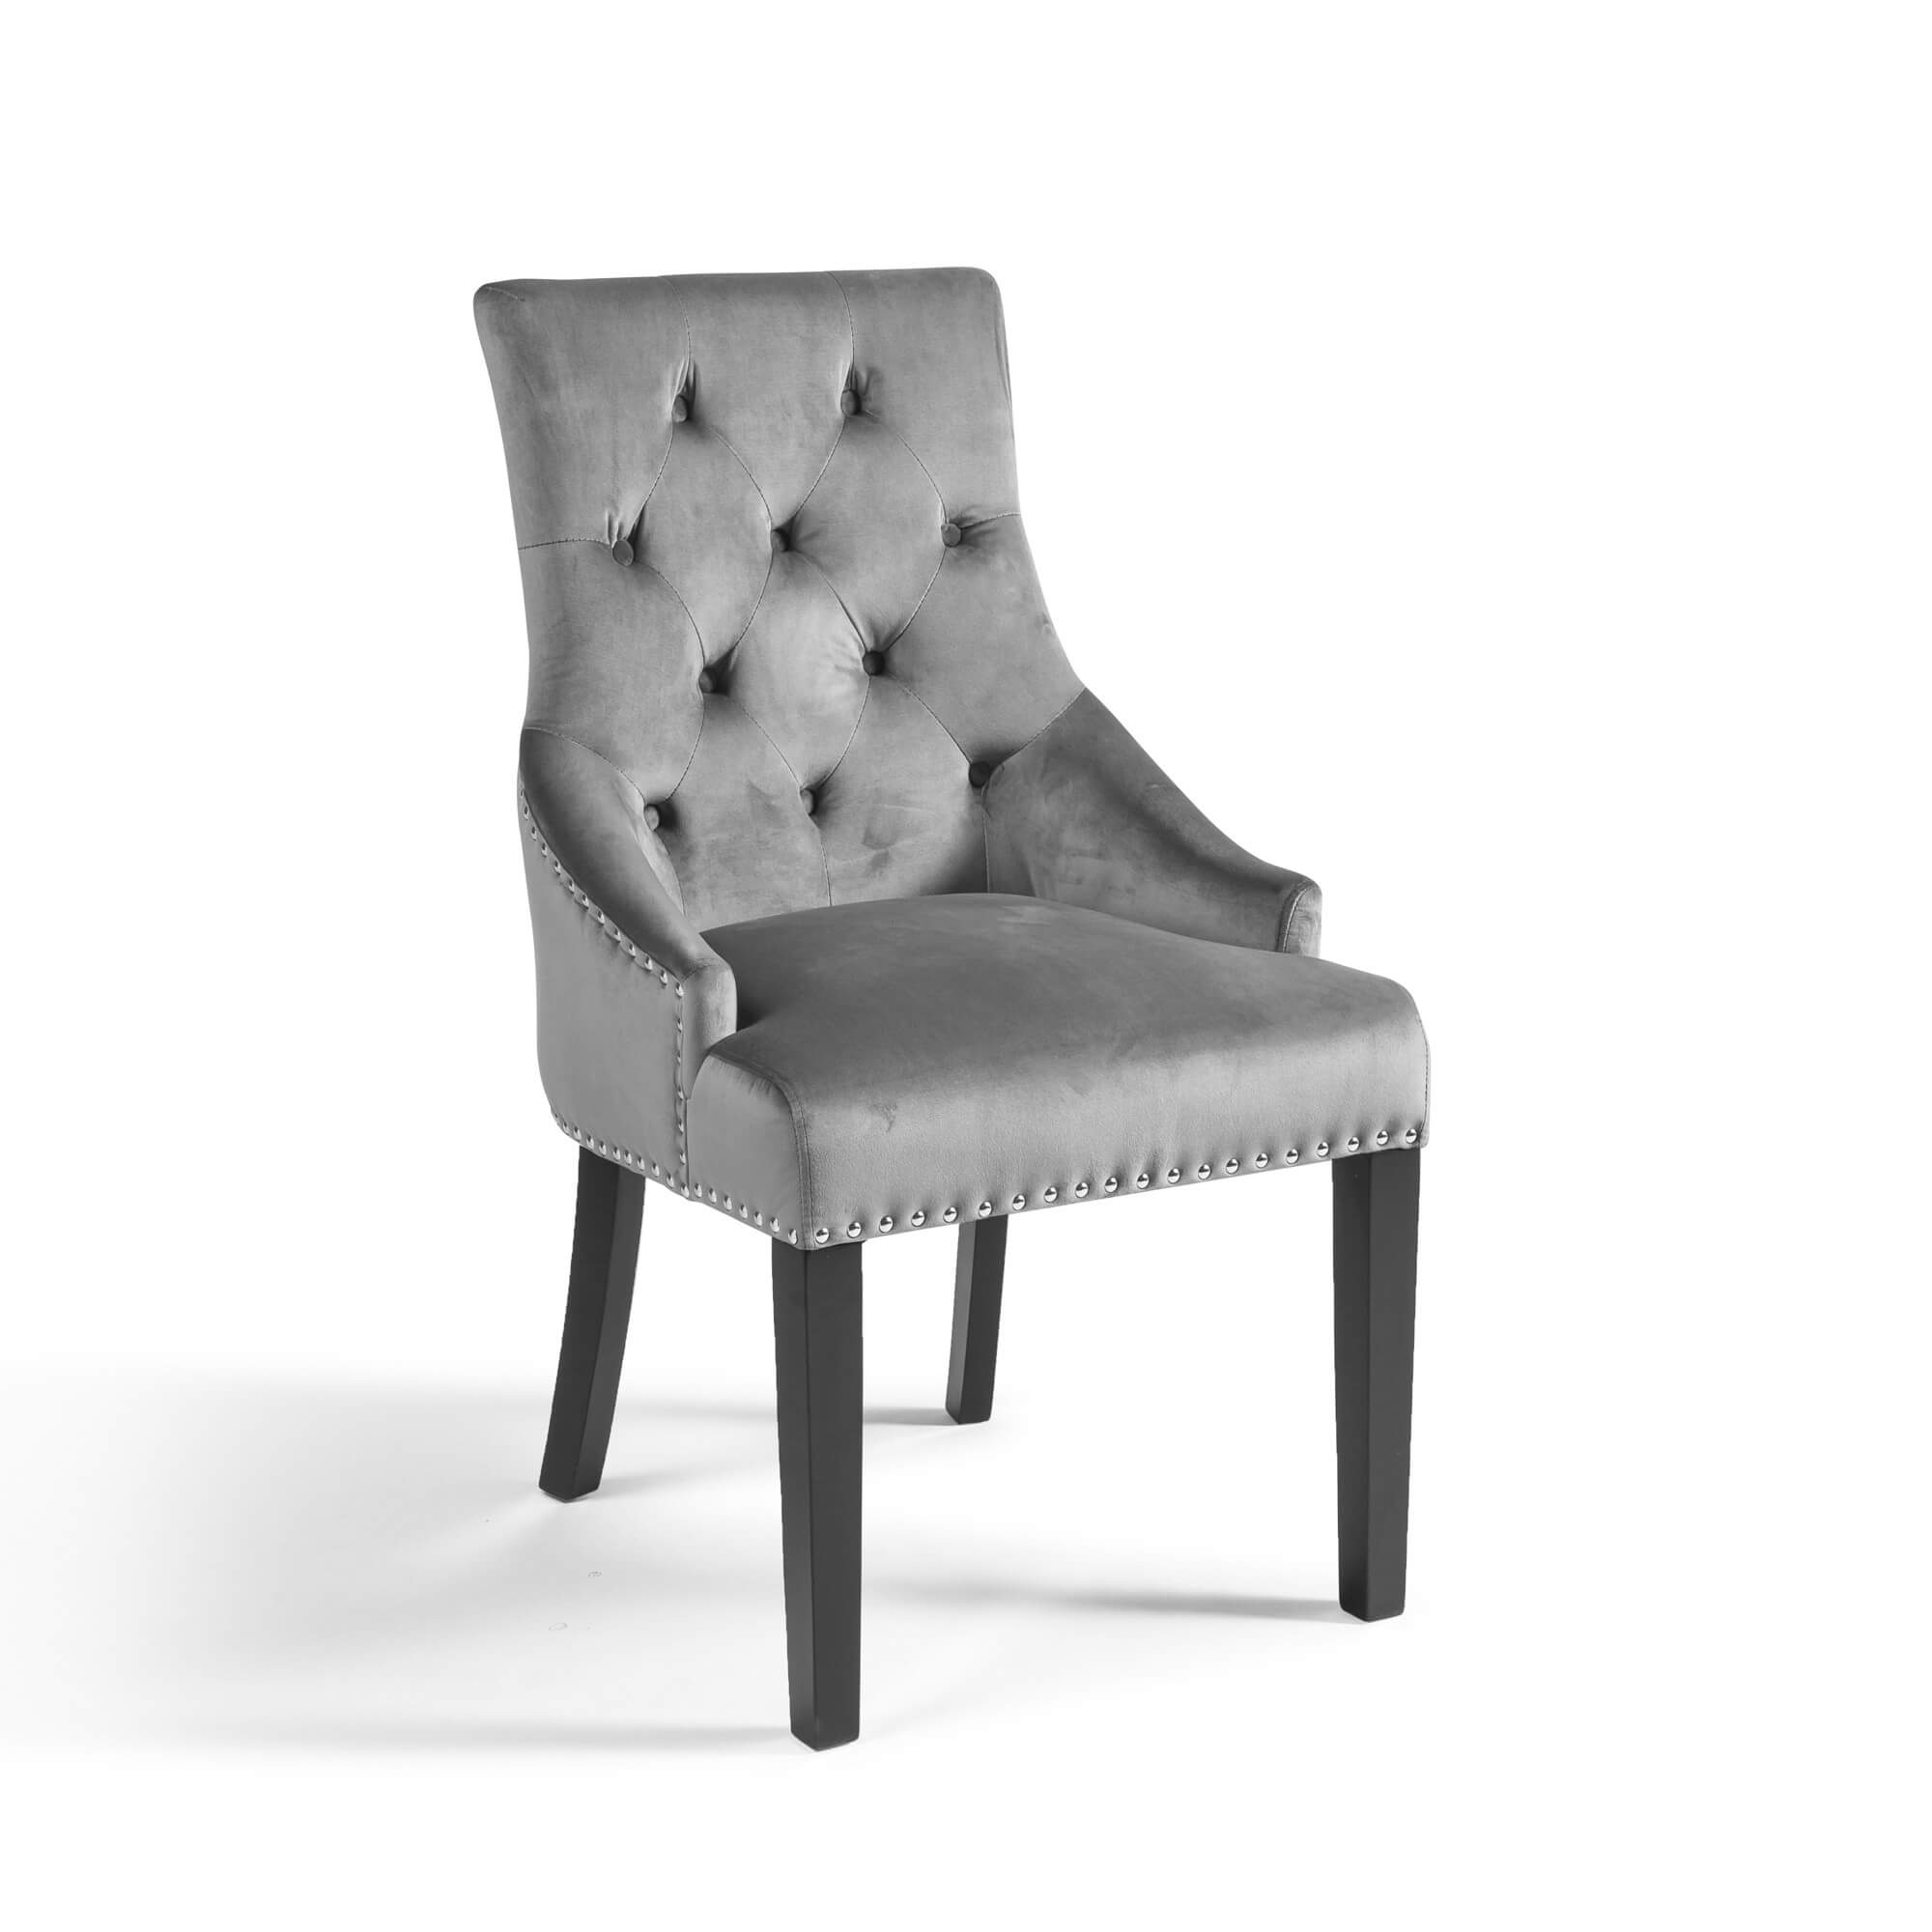 Grey Brushed Velvet Upholstered Scoop Dining Chair with Hoop